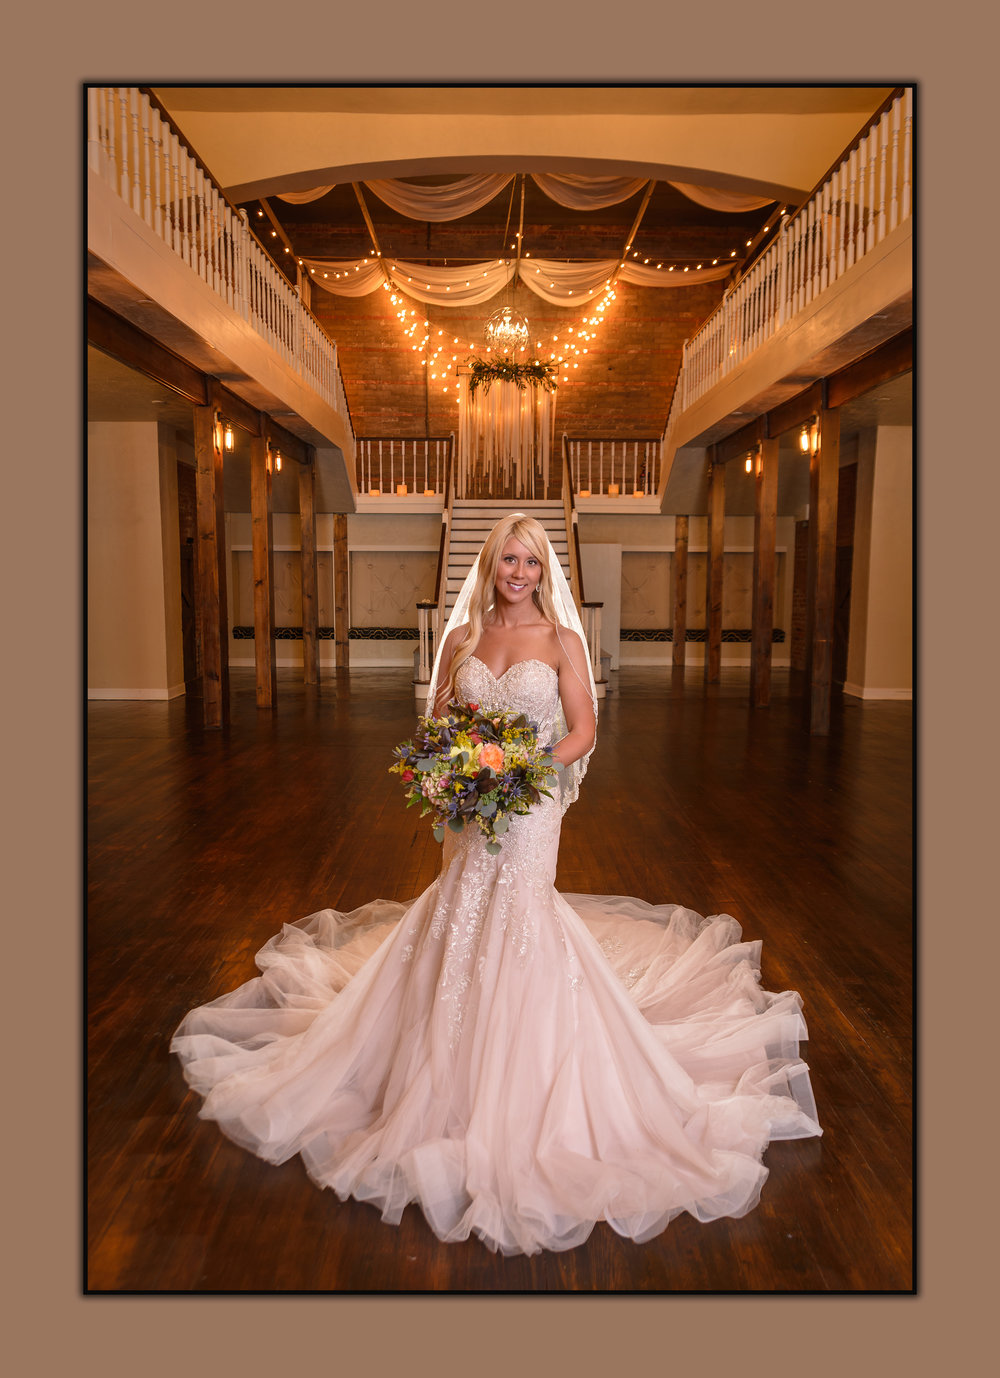 OKC Wedding Photographer, On location, bridal, The Grand Canadian Theater